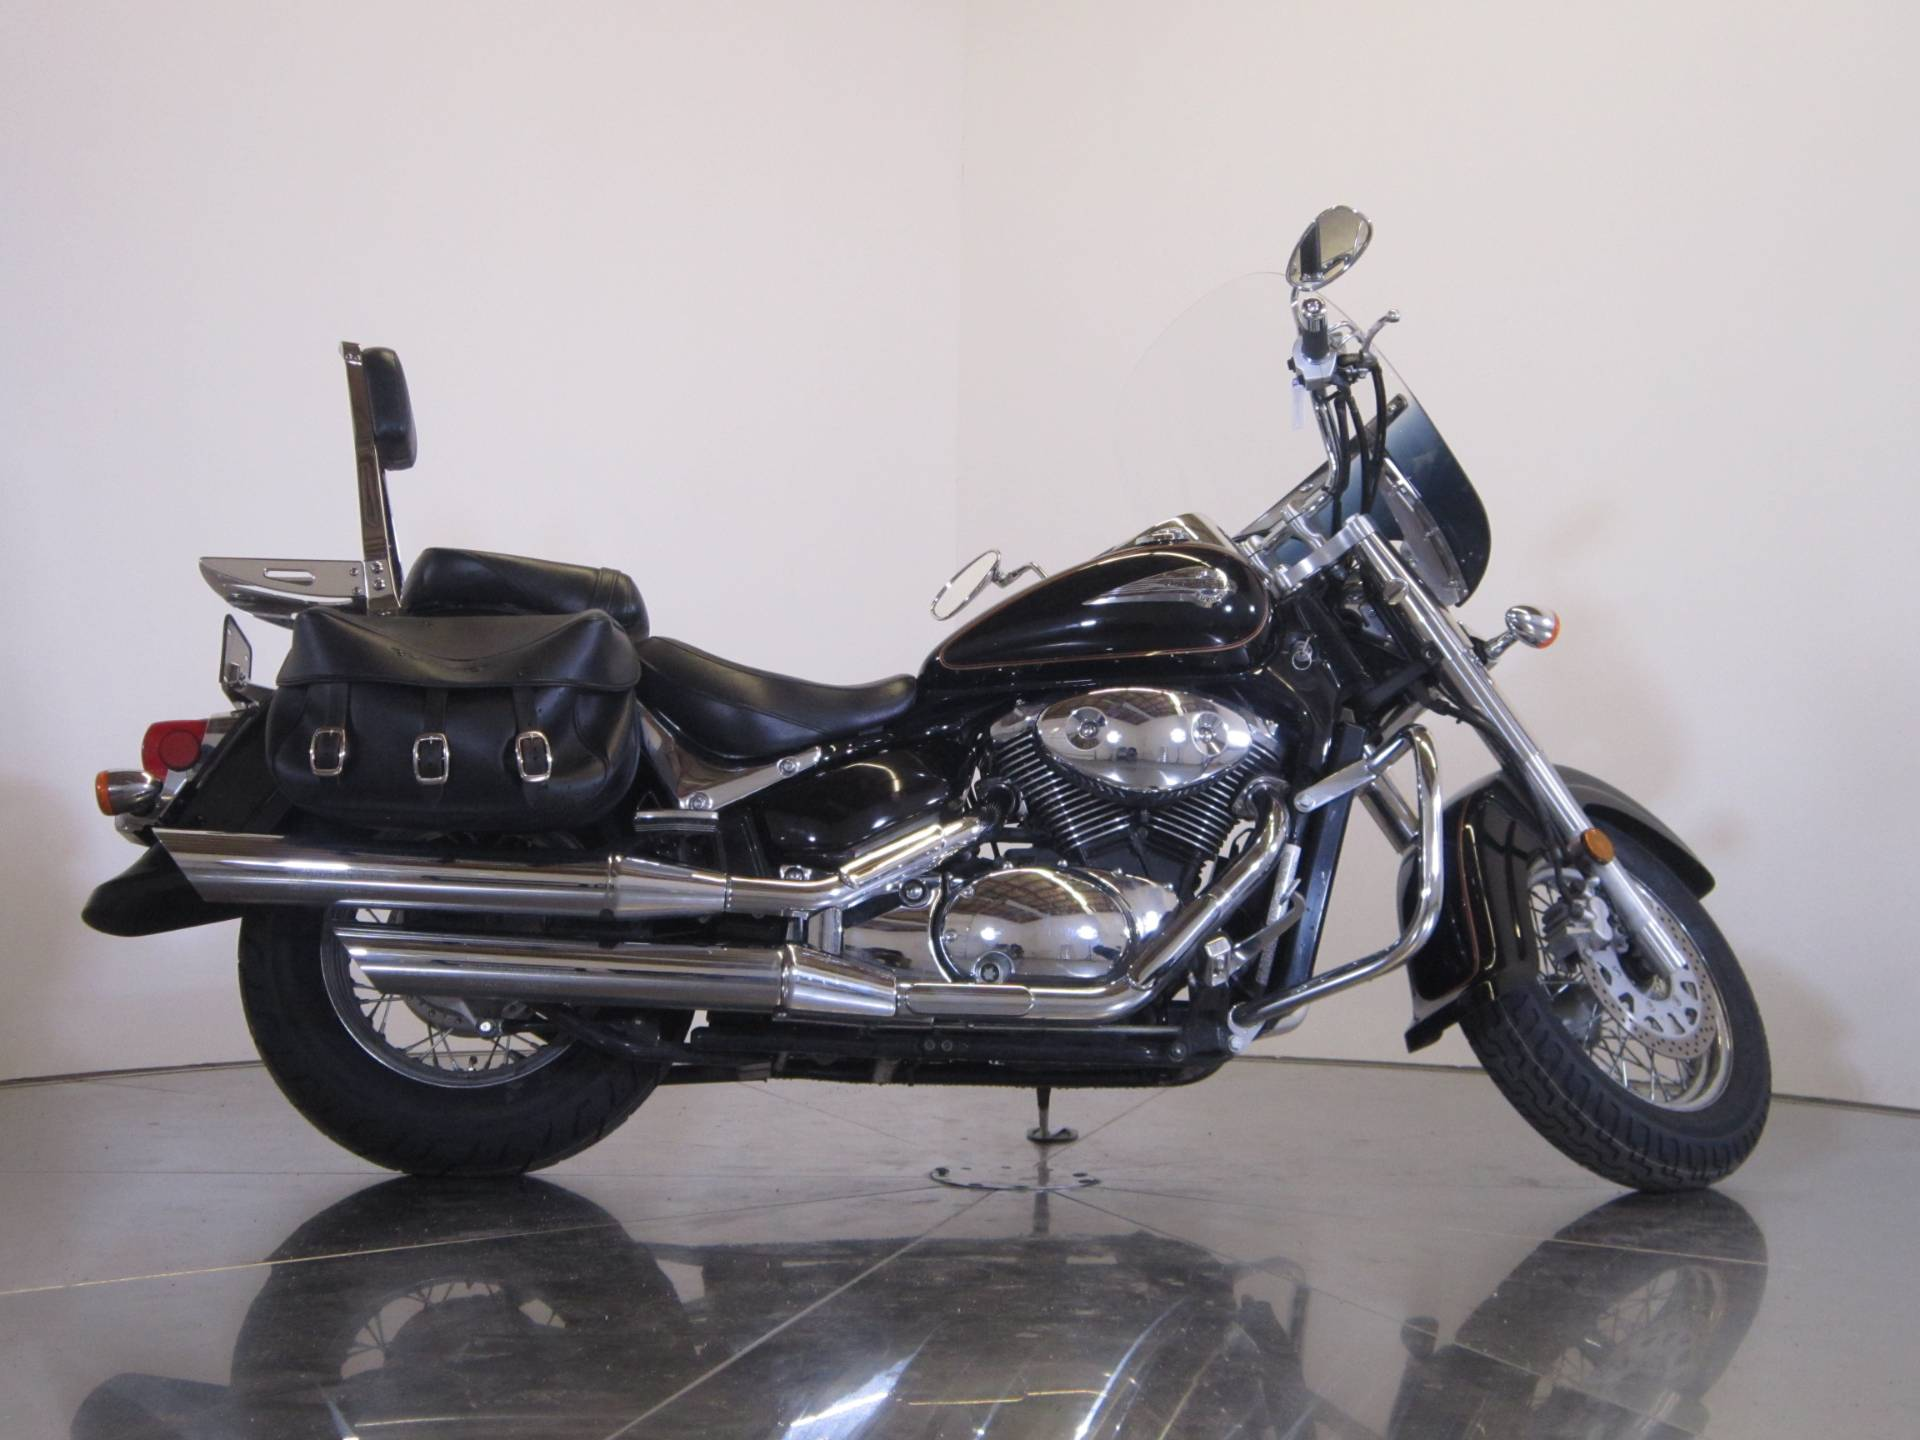 2004 Suzuki Intruder Volusia 800 1